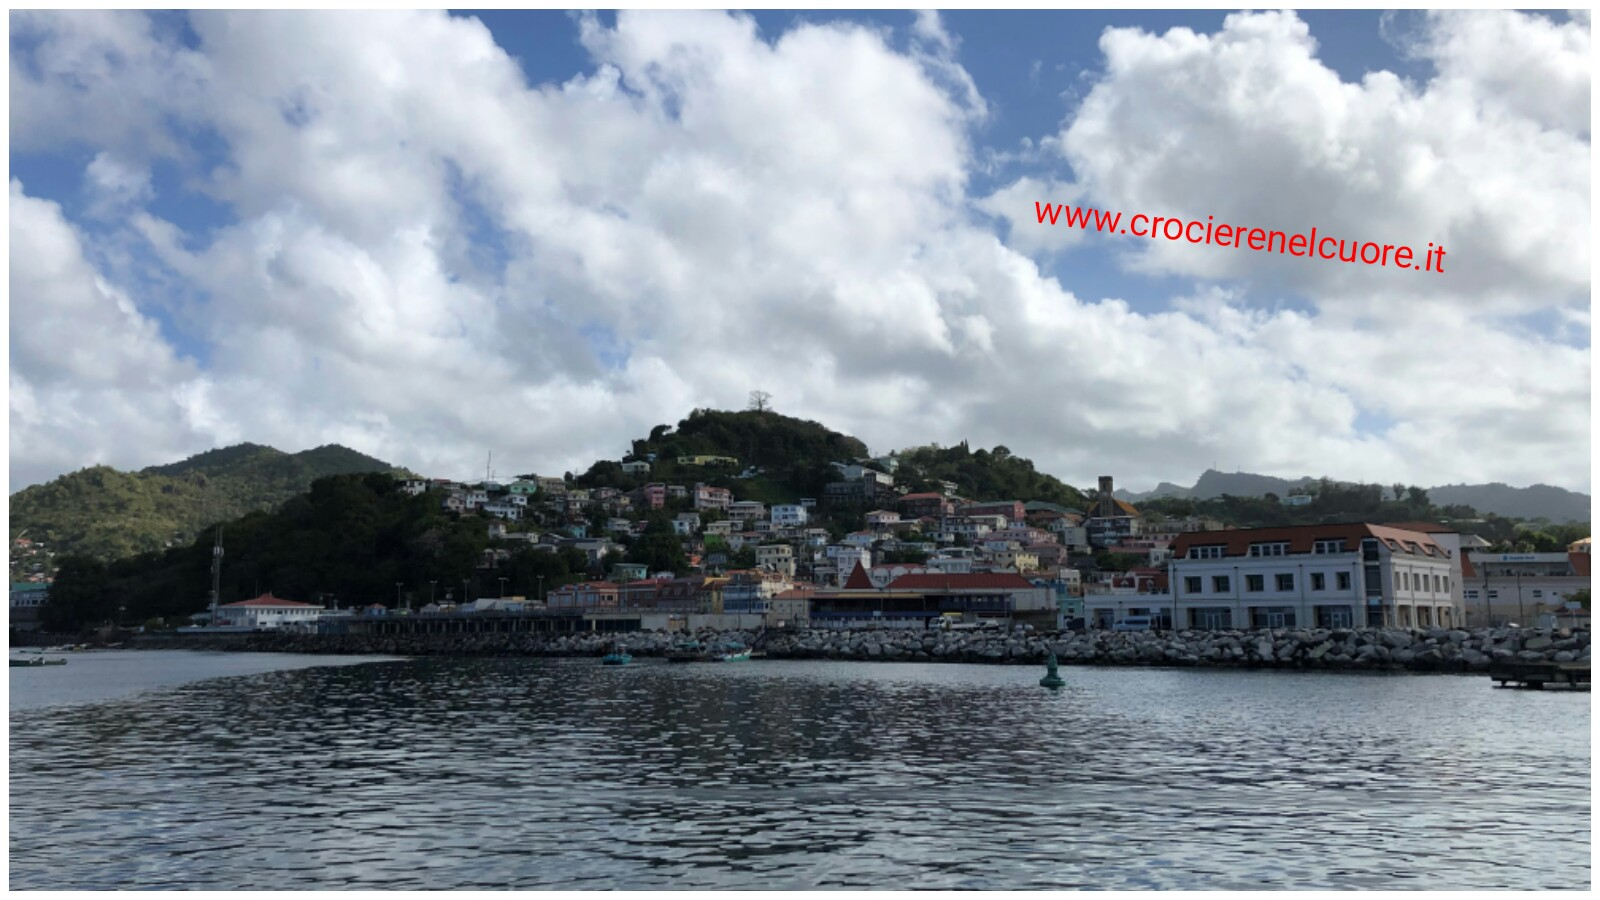 www.crocierenelcuore.it - Grenada